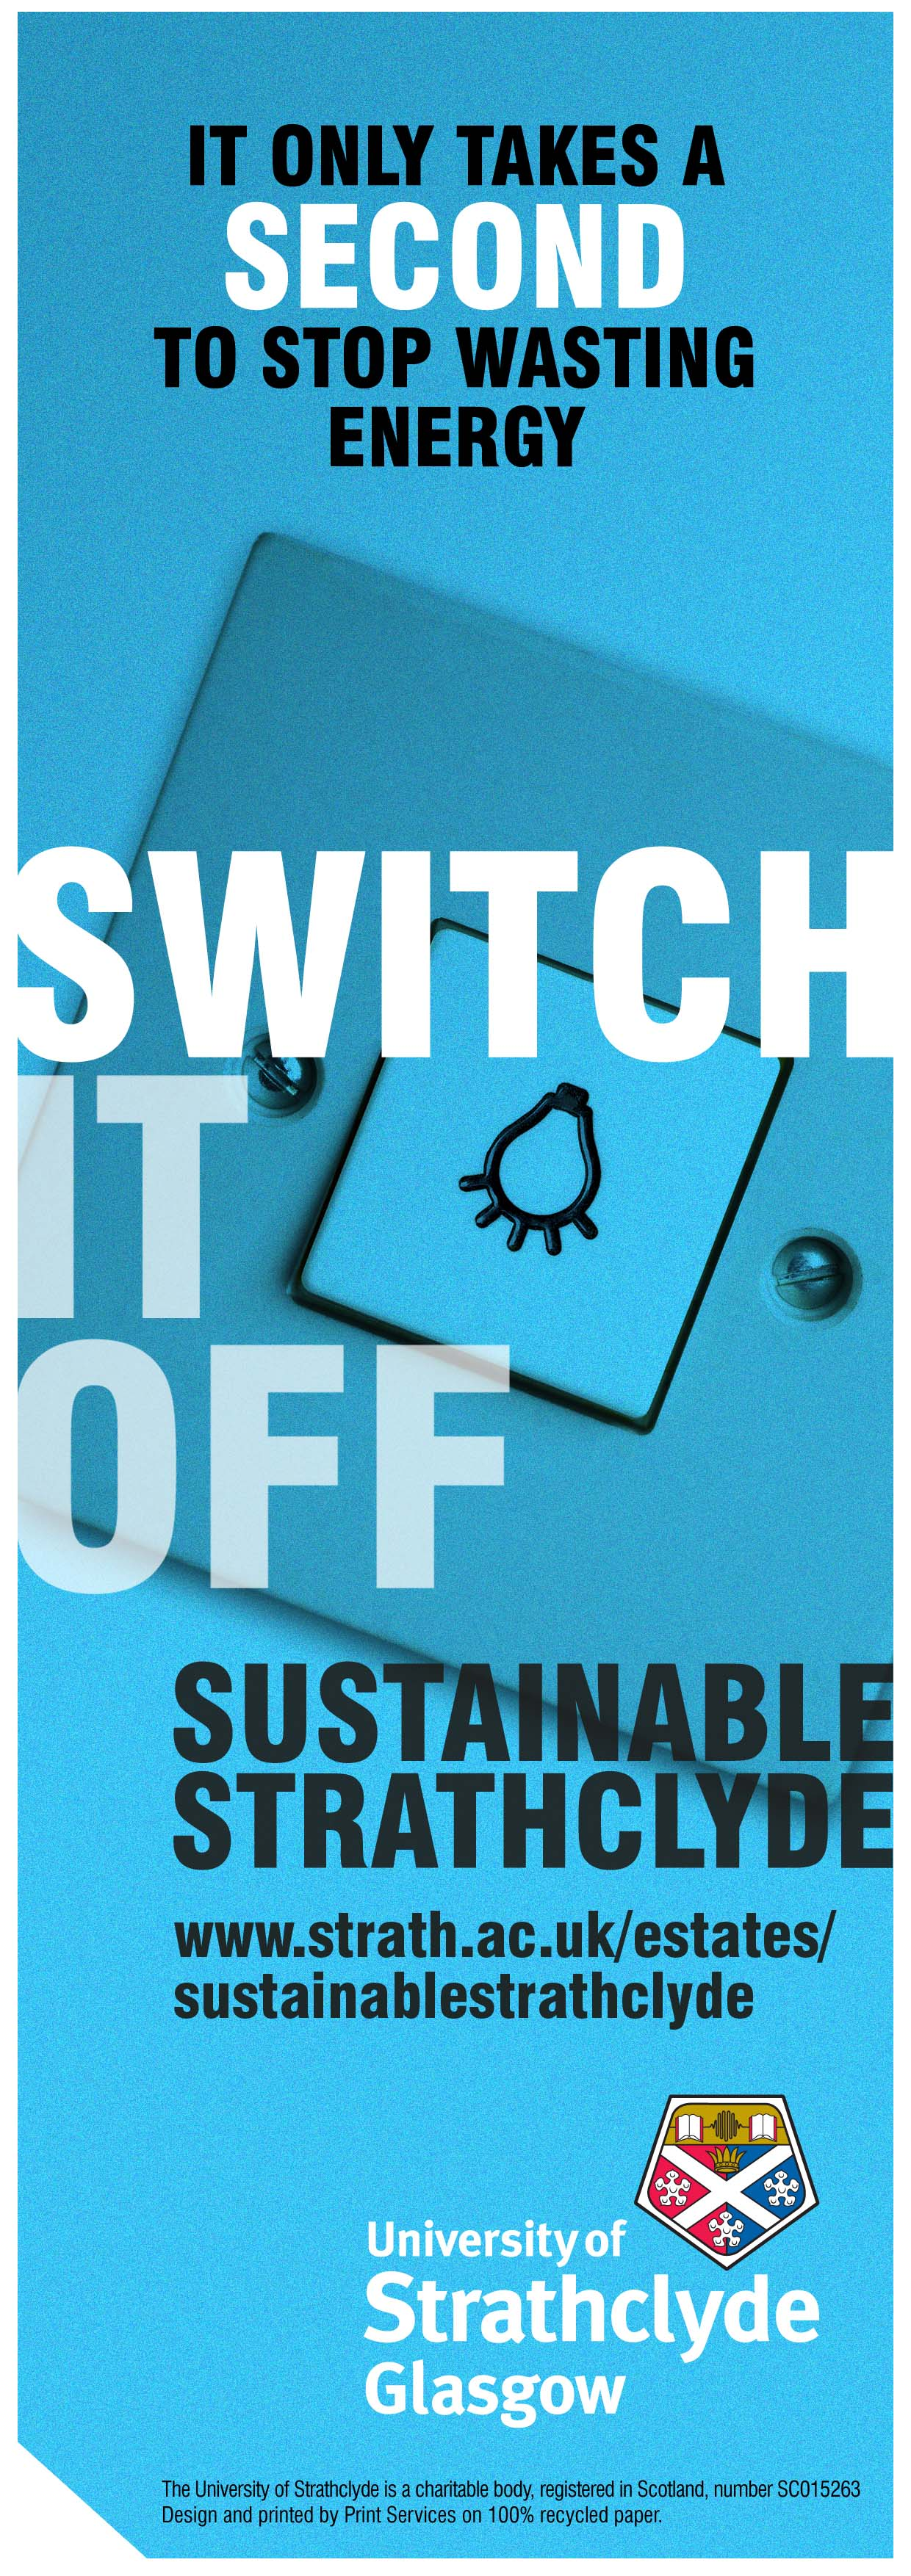 Weekend Freedom Machines >> Switch Off Campaign - University of Strathclyde